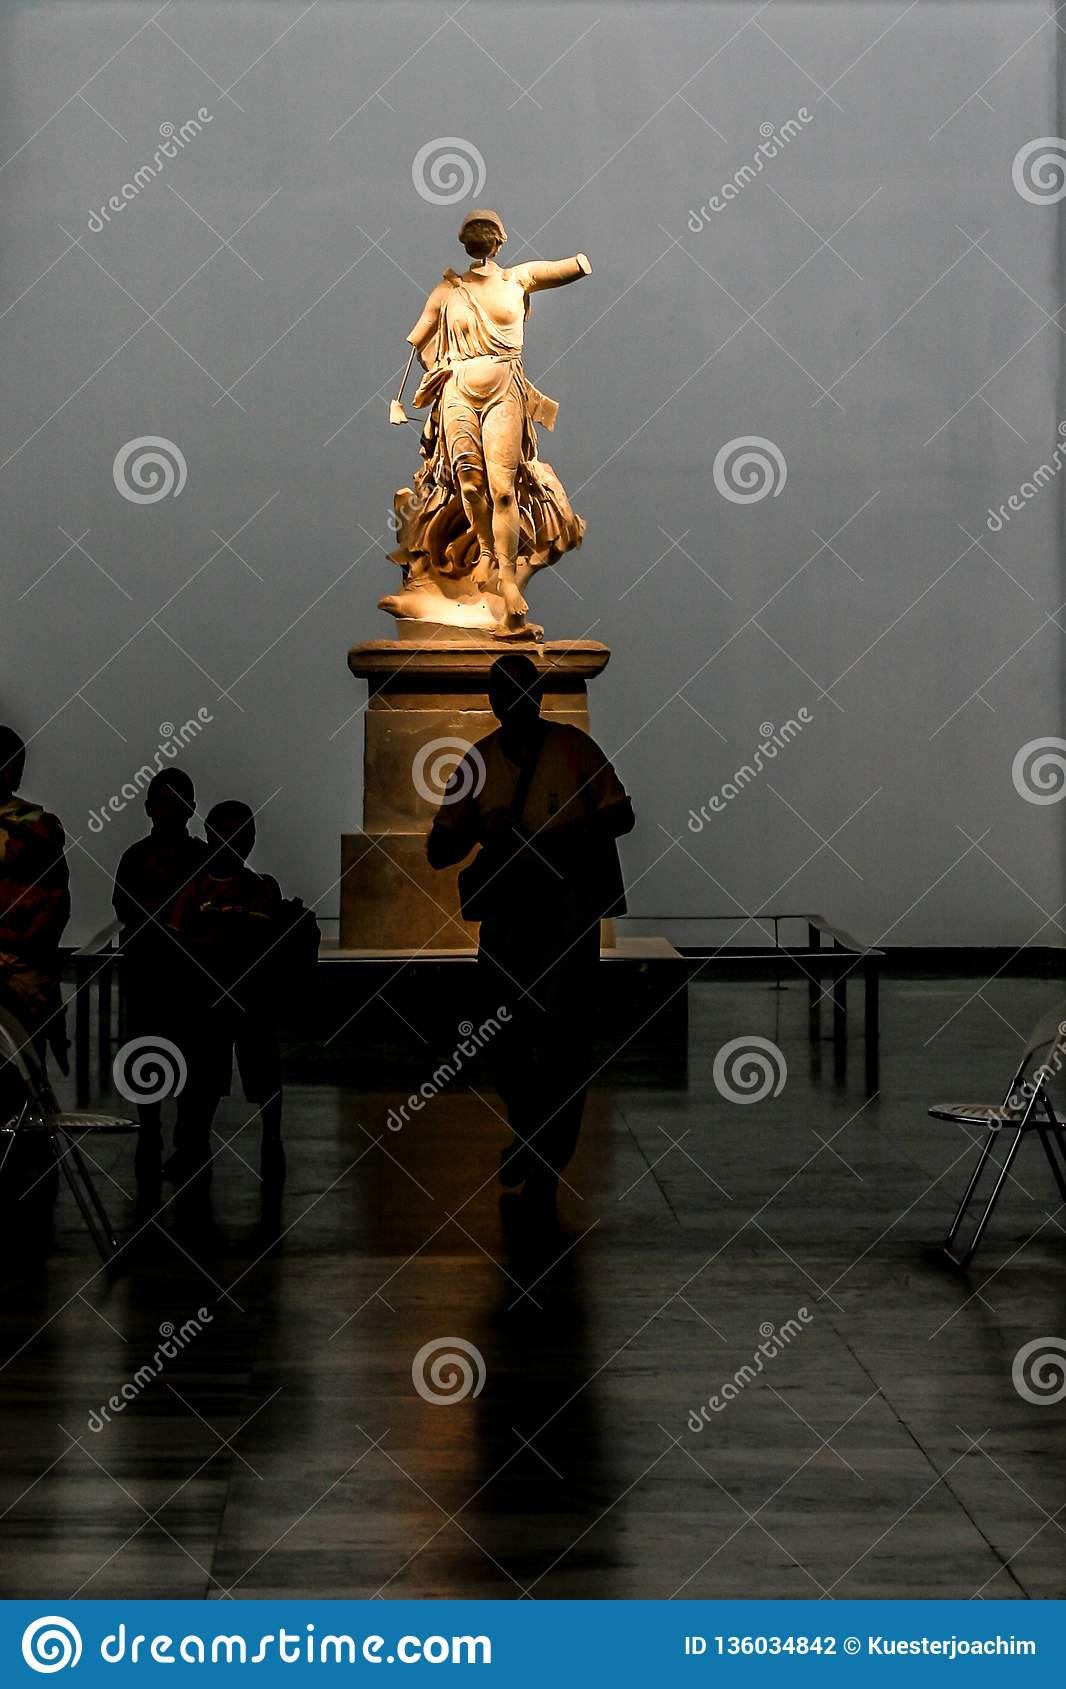 Illuminated hellenic statue of a woman in a museum with visitors